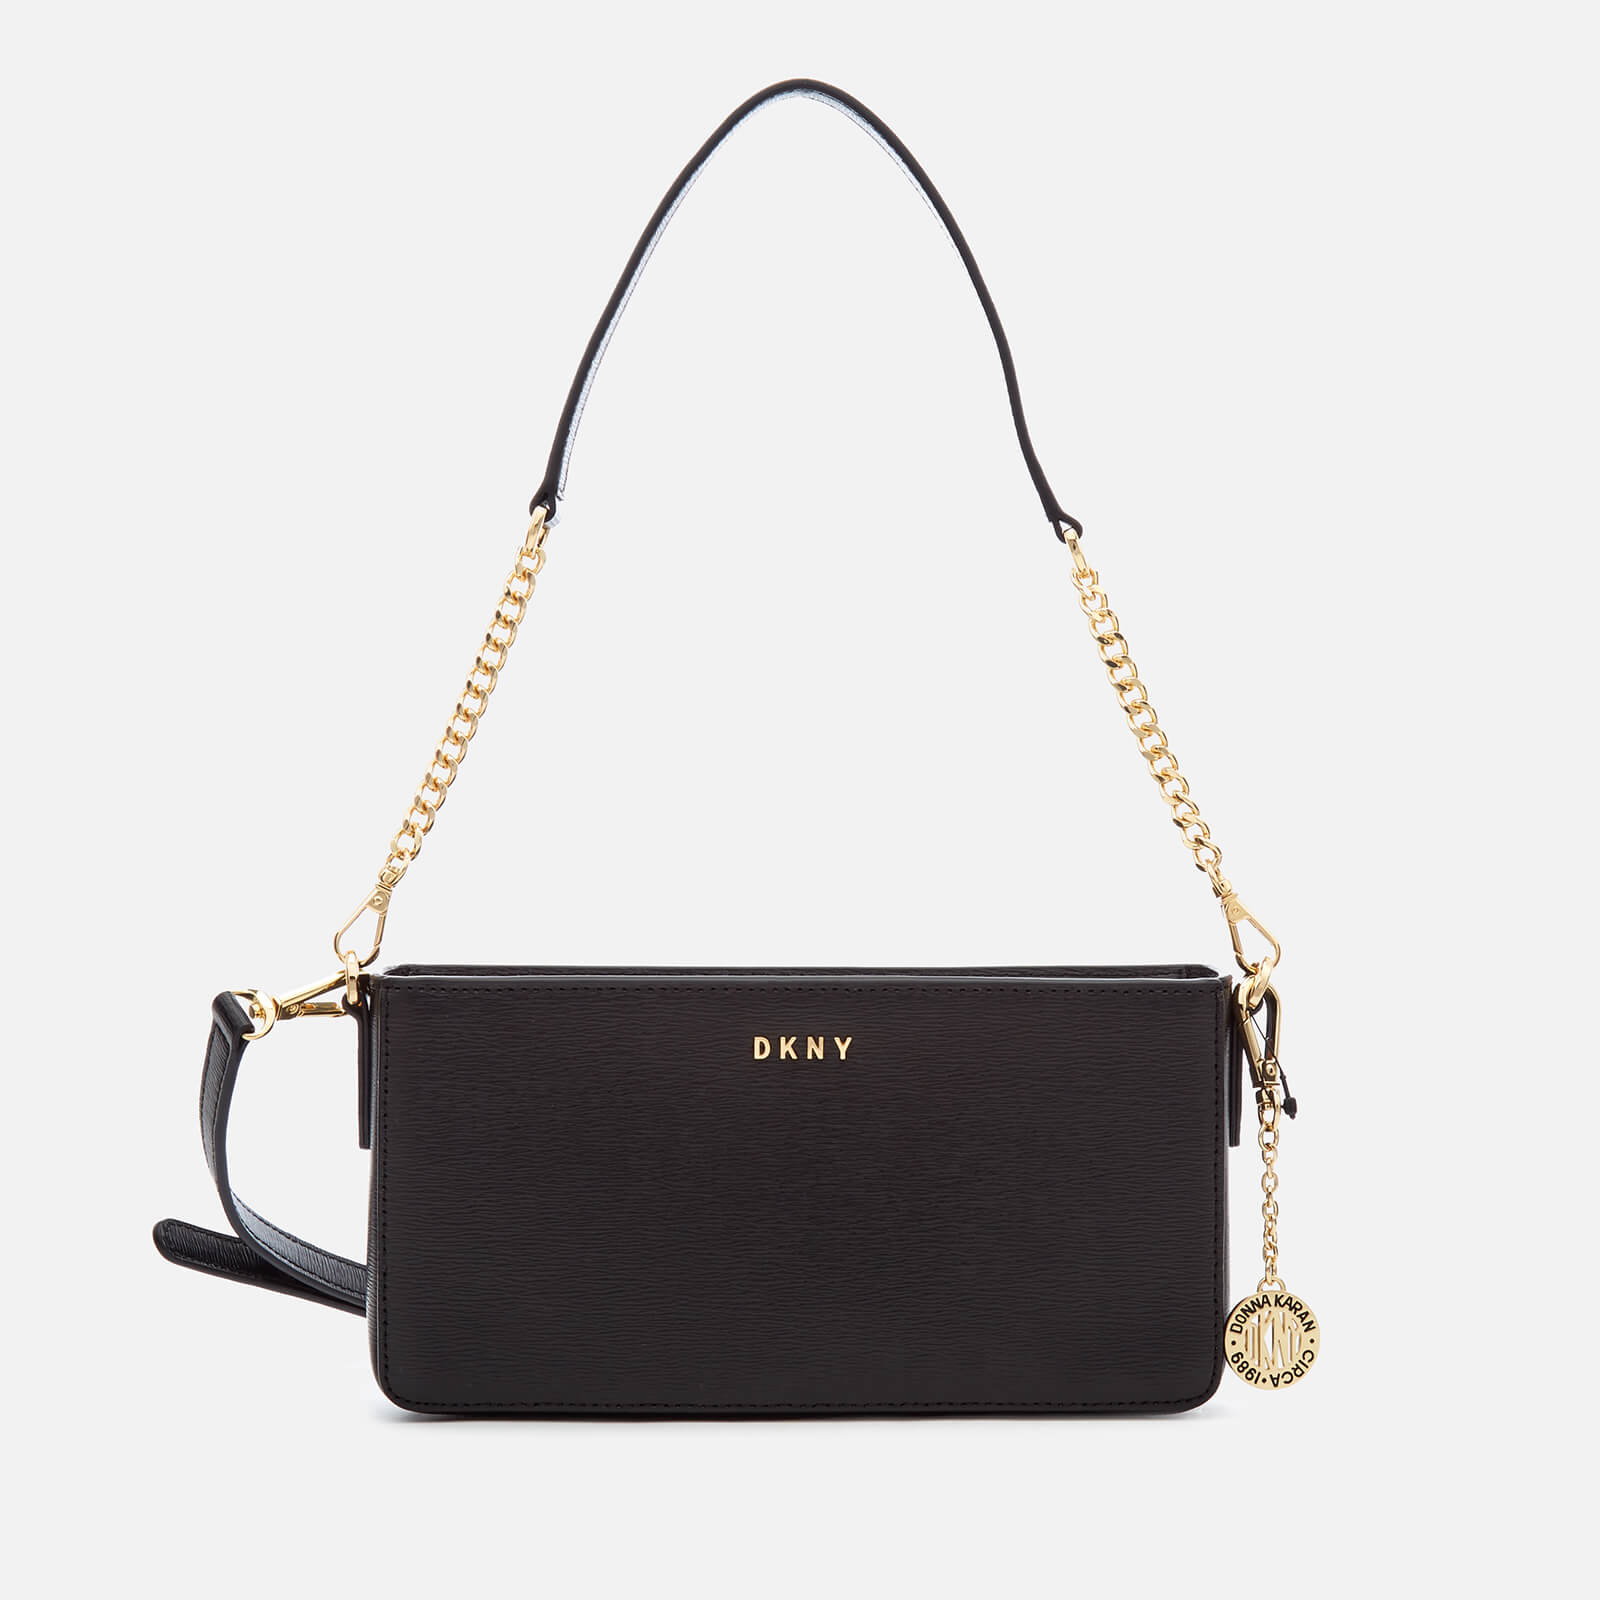 DKNY Women s Bryant Small Demi Cross Body Bag - Black - Free UK Delivery  over £50 2df8575133fb4